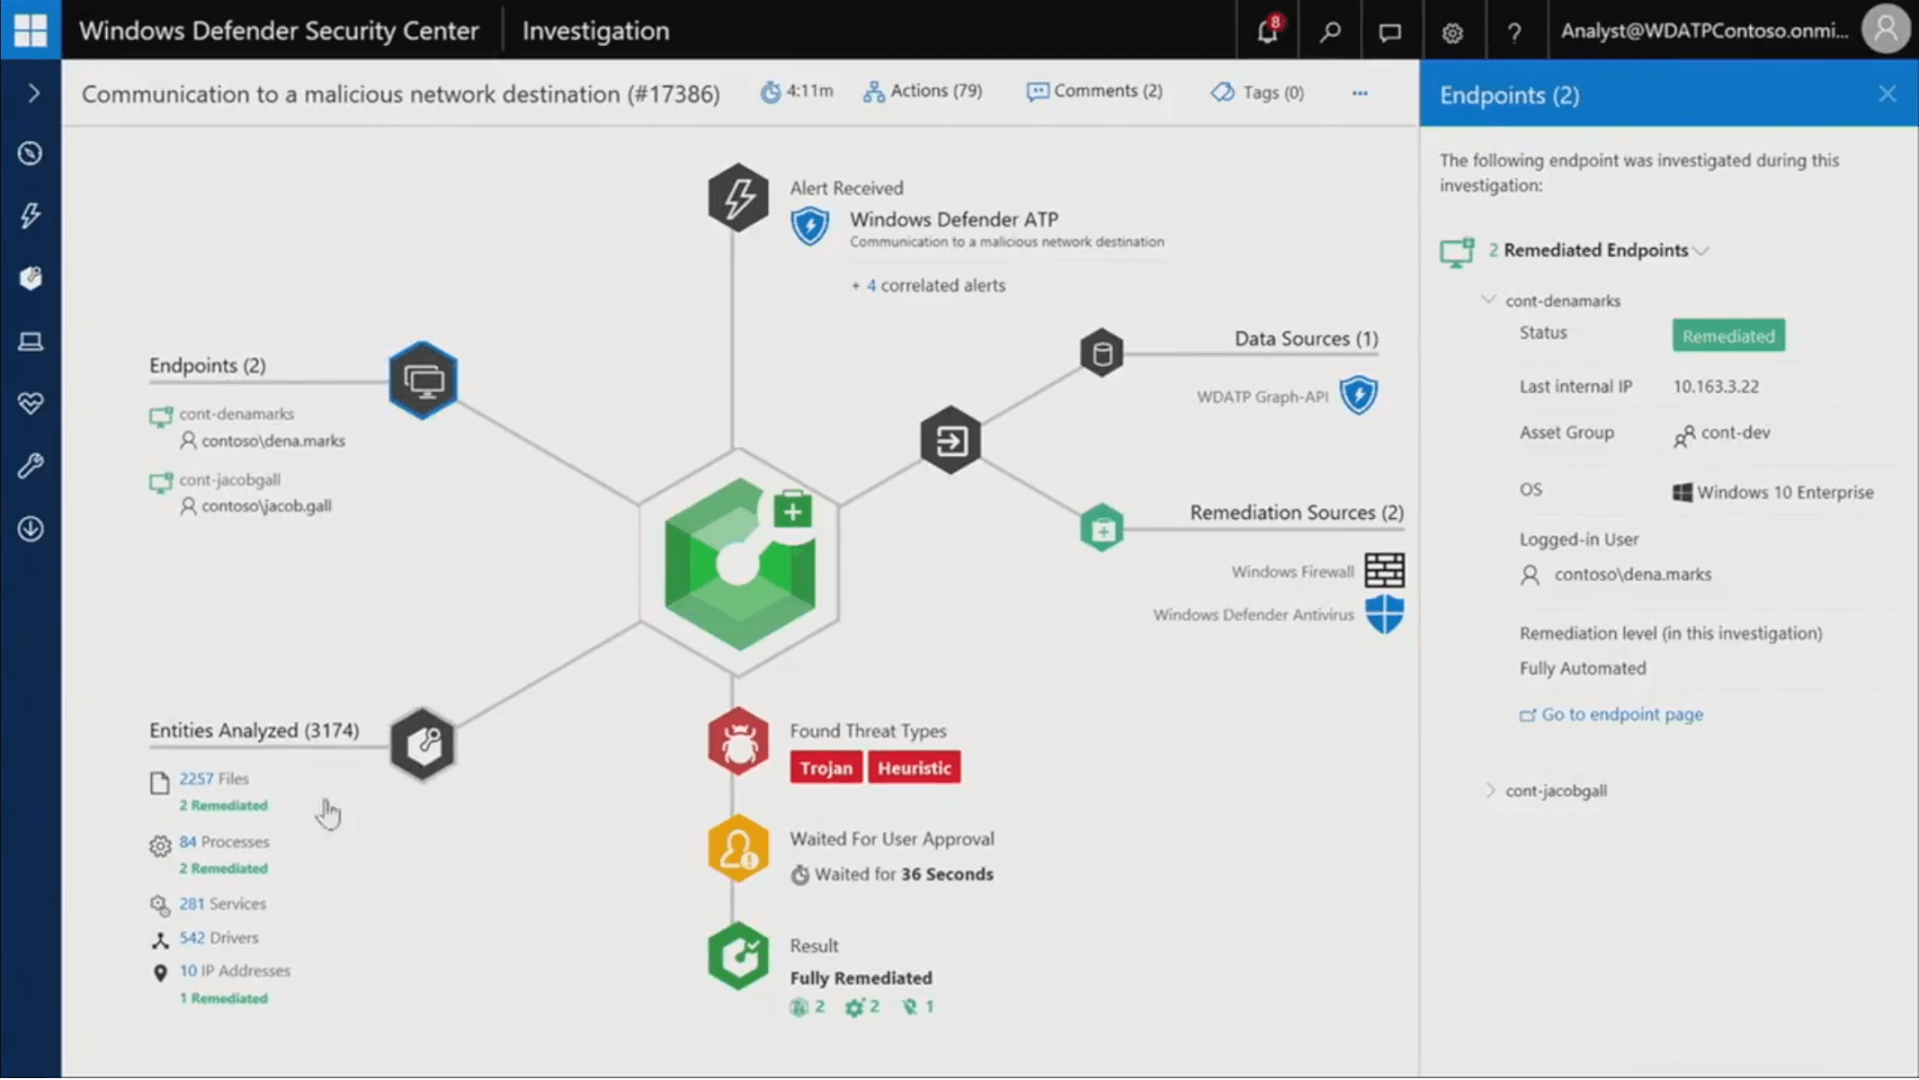 """Texte de remplacement généré par une machine: Windows Defender Security Center Investigation Communication to a malicious network destination (#17386) G 4:11m Actions (79) Alert Received 4 Comments (2) 4 O Tags (O) Data Sources (I) WOATP Graph.AP1 ? Analyst@WDATPContoso.onmi."""" Endpoints (2) The following endpoint was investigated during this investigation: 2 Remediated Endpoints Endpoints (2) COnt-denamarks contoso\deoa.marks COntjacobgall A contosovacob.gall Entities Analyzed (3174) 2257 Files Processes 281 Services SQ Drivers 9 10 IP Addresses Windows Defender ATP to a 4 correlated alerts Found Threat Types Trojan Heuristic Waited For User Approval Waited for 36 Seconds Result Fully Remediated cont•denamarks Status Last internal IP Asset Group Logged-in User Remediated 10.163.322 RA cont.dev Windows 10 Enterprise Remediation Sources (2) Windows Firewall Windows Defender Antivirus A contoso\dena.marks Remediation level (in this investigation) Fully Automated Cf Go to endpoint page cont•jacobgall"""